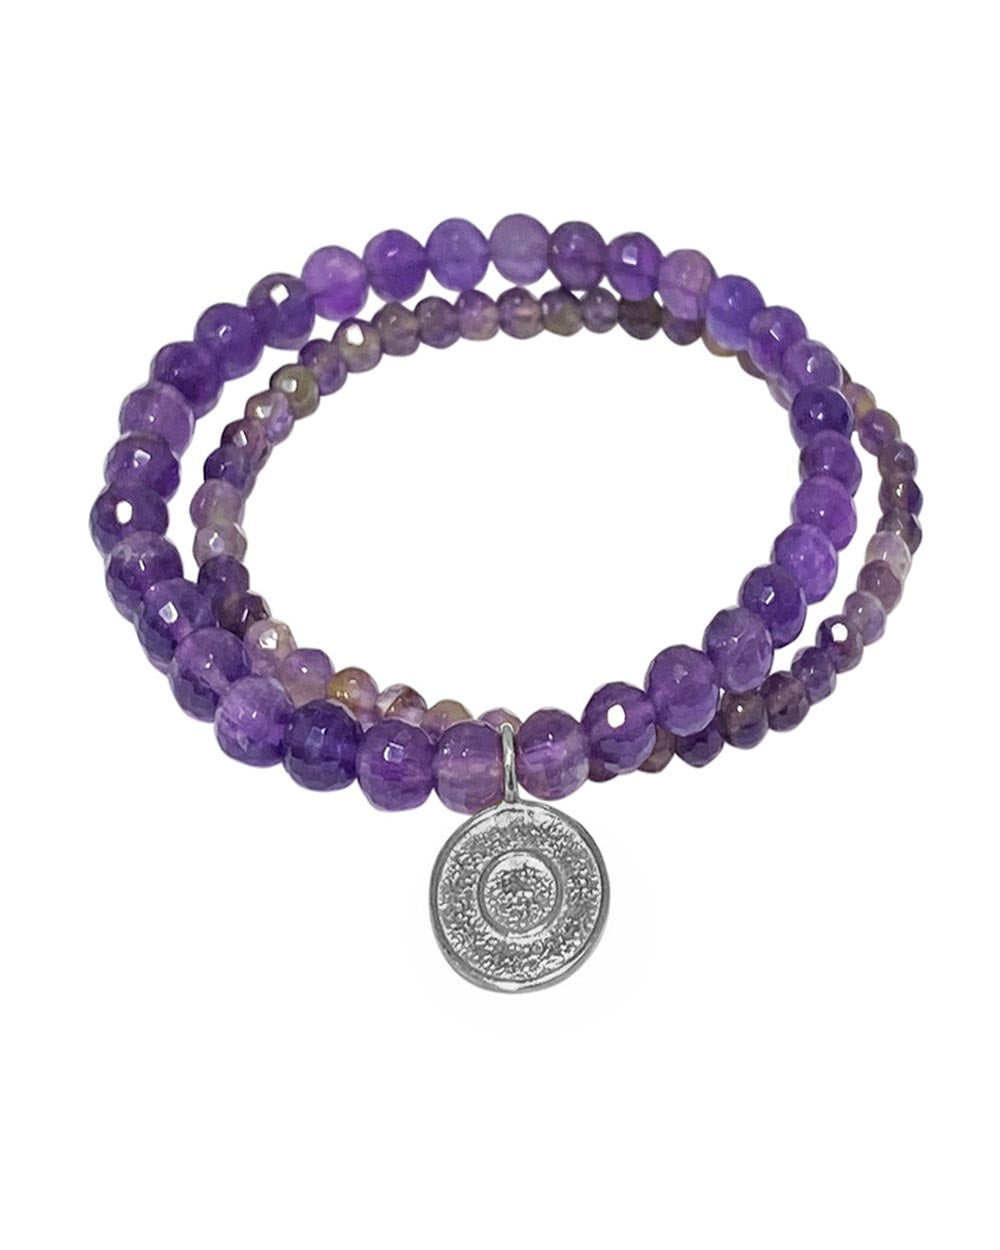 Ether Elements Bracelet Set with Amethyst in Sterling Silver